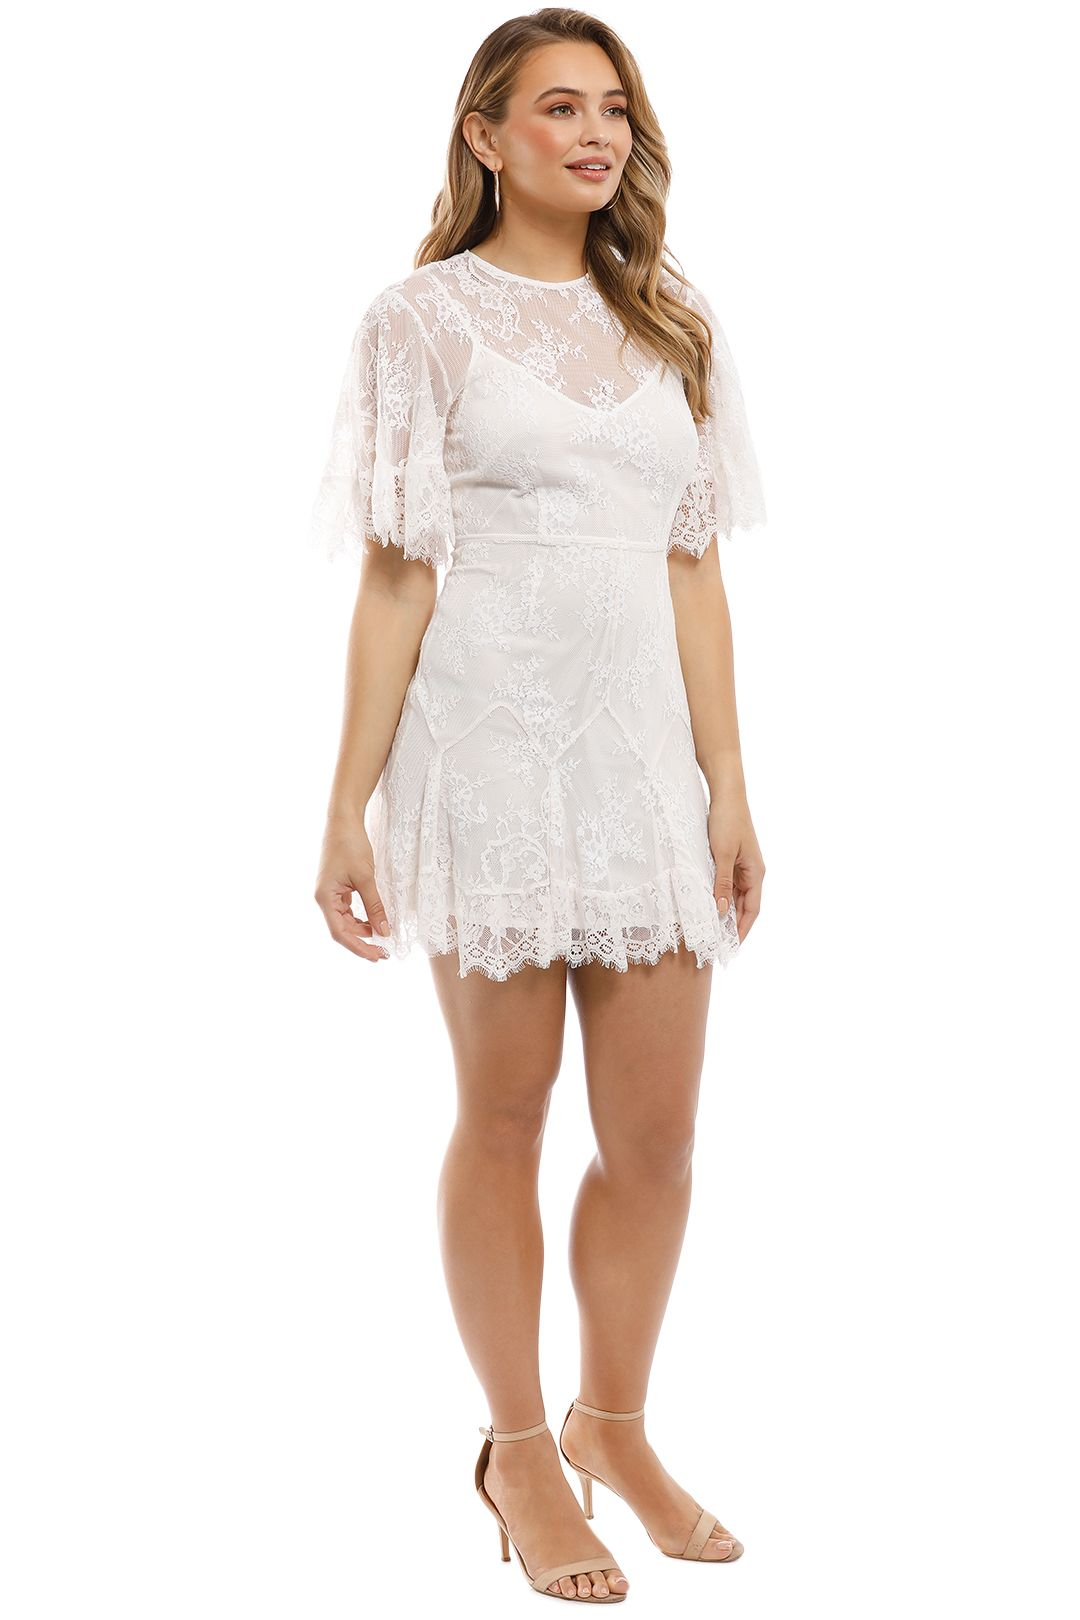 Talulah - Blind Love Mini Dress - White - Side